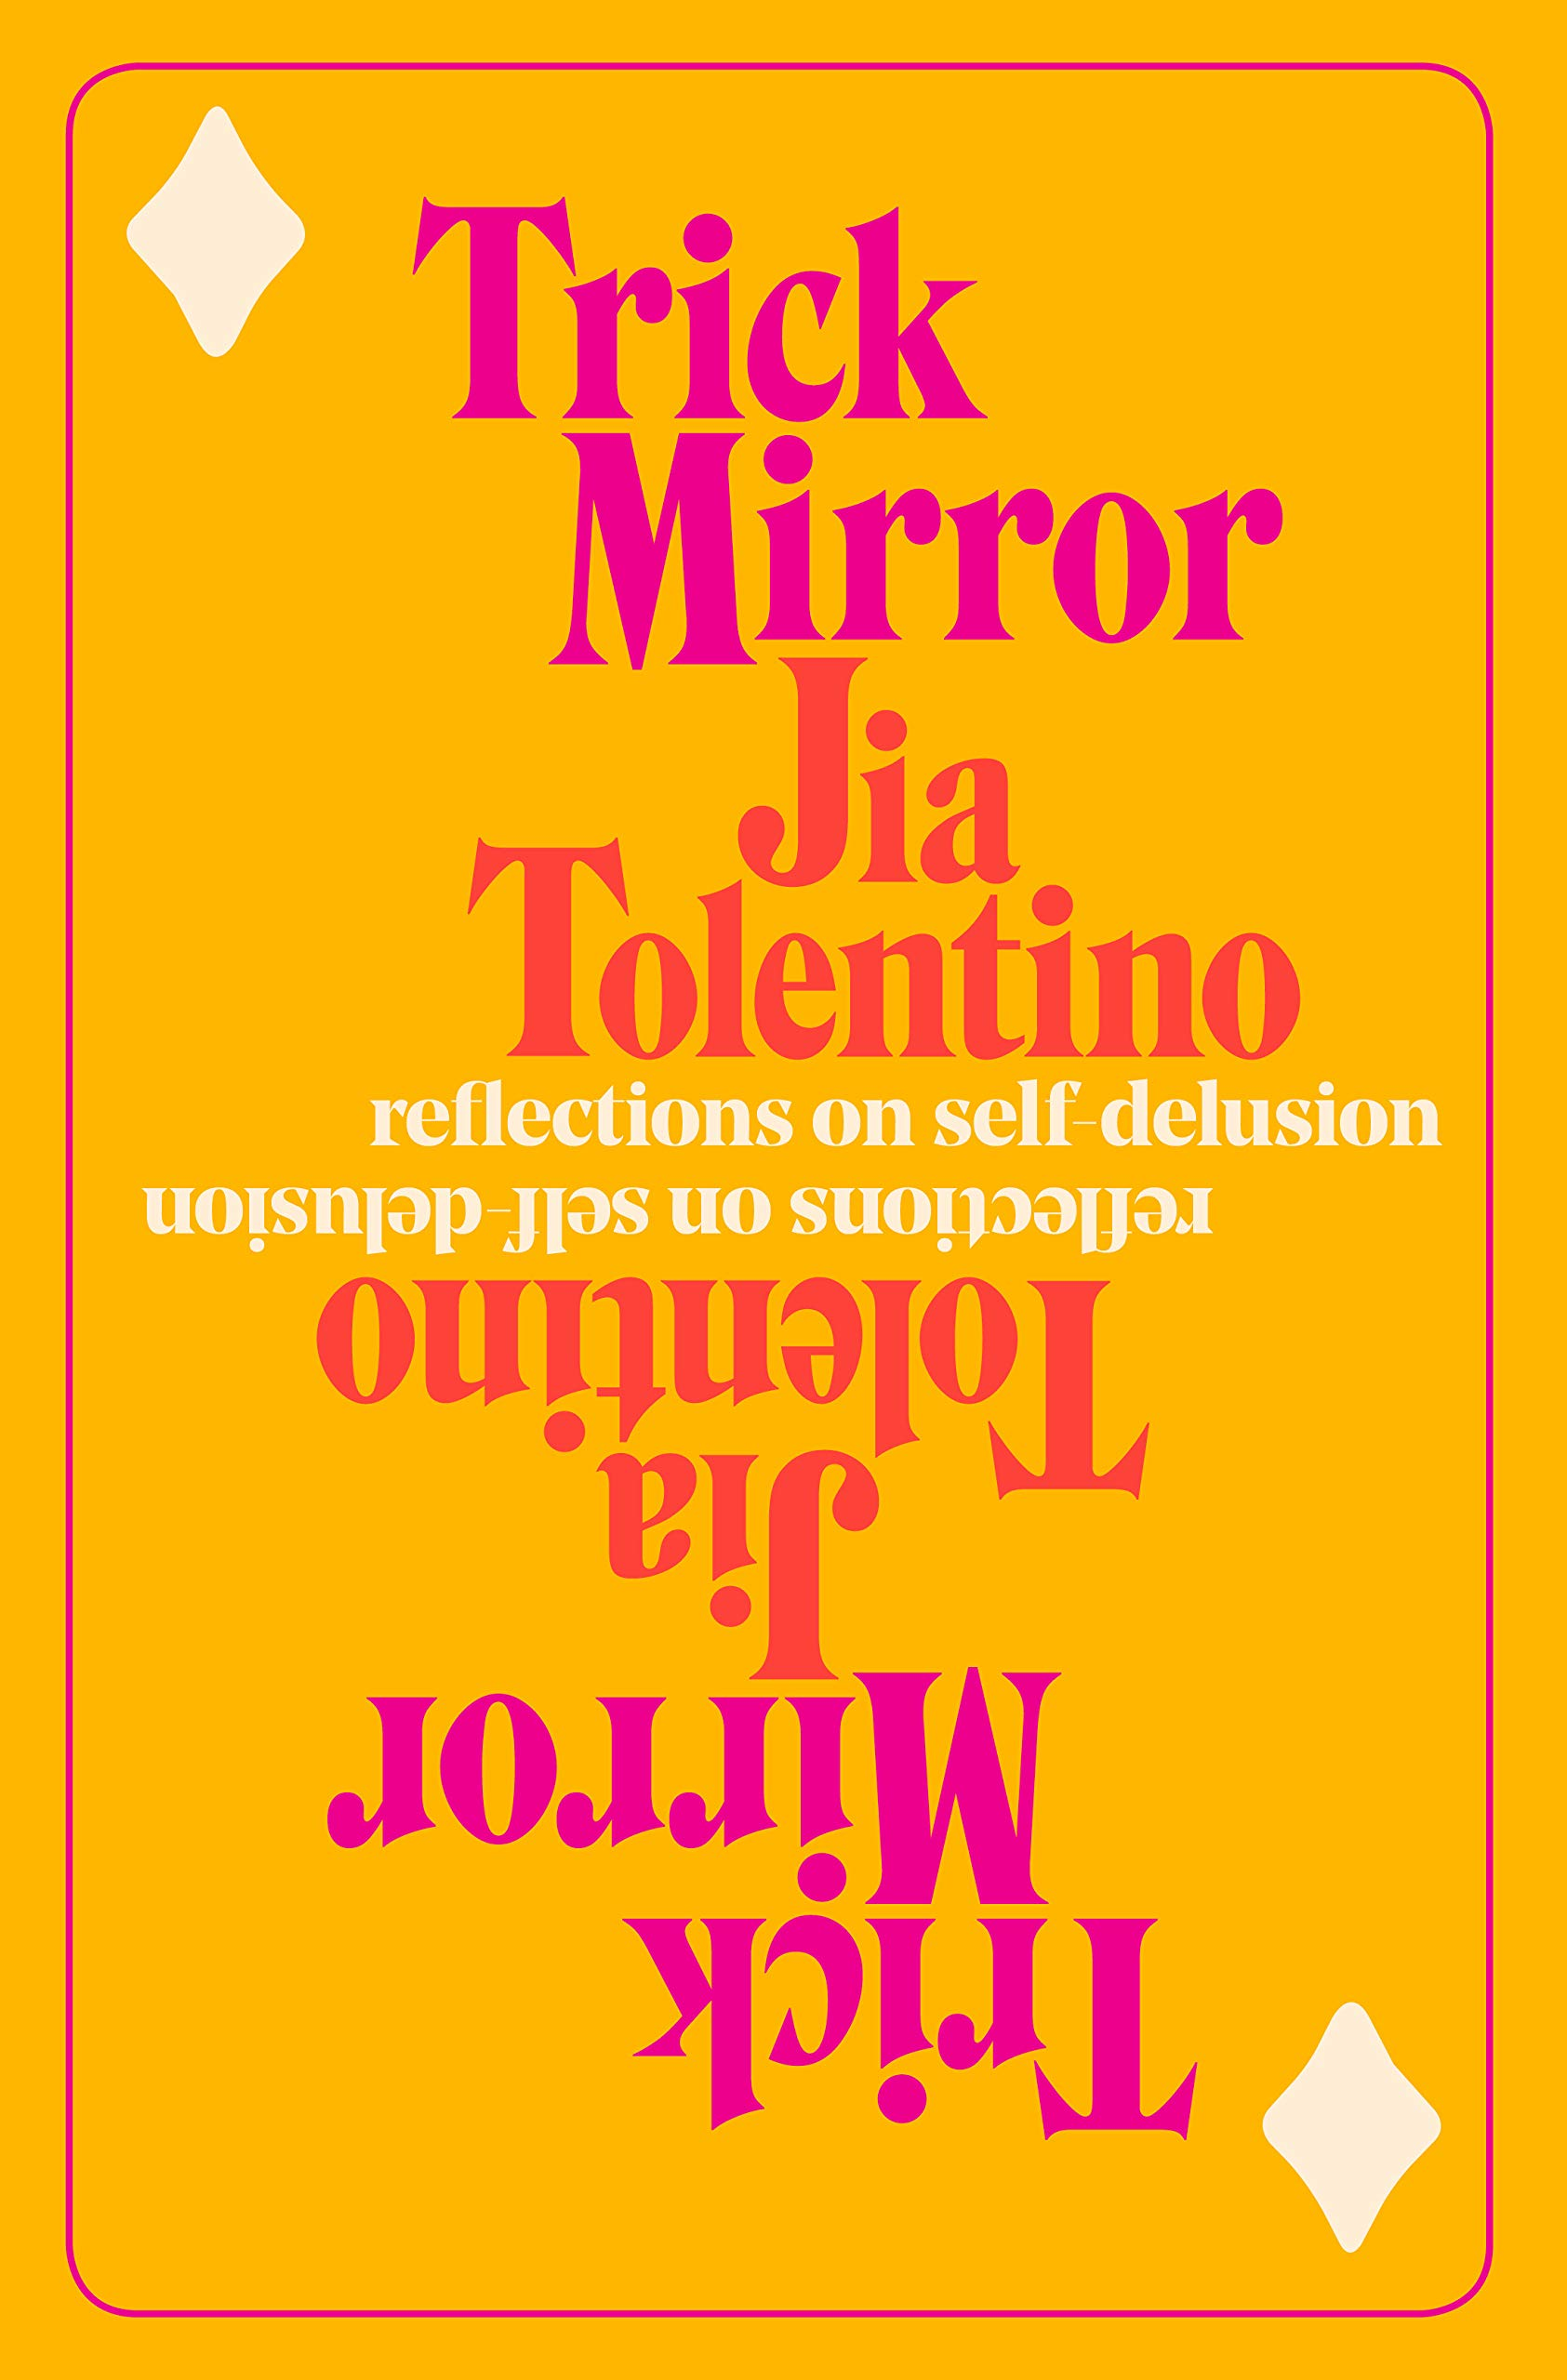 Trick Mirror: Reflections on Self-Delusion by Jia Tolentino Random House, 2019